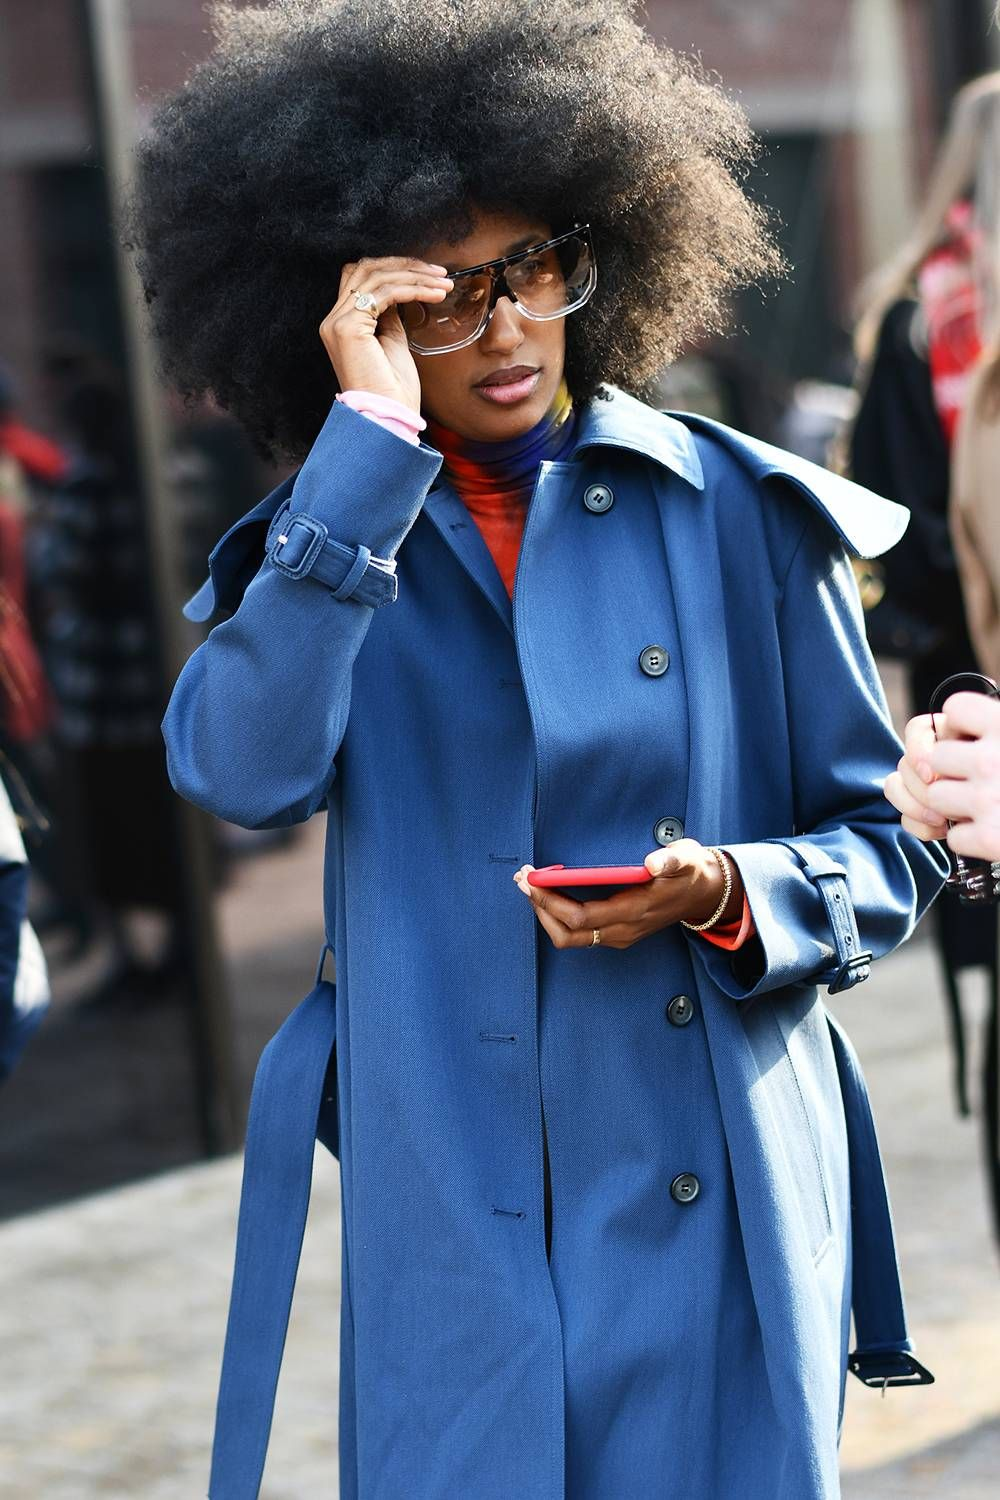 9 Street Style Signs That the 80s Trend Is Really Happening